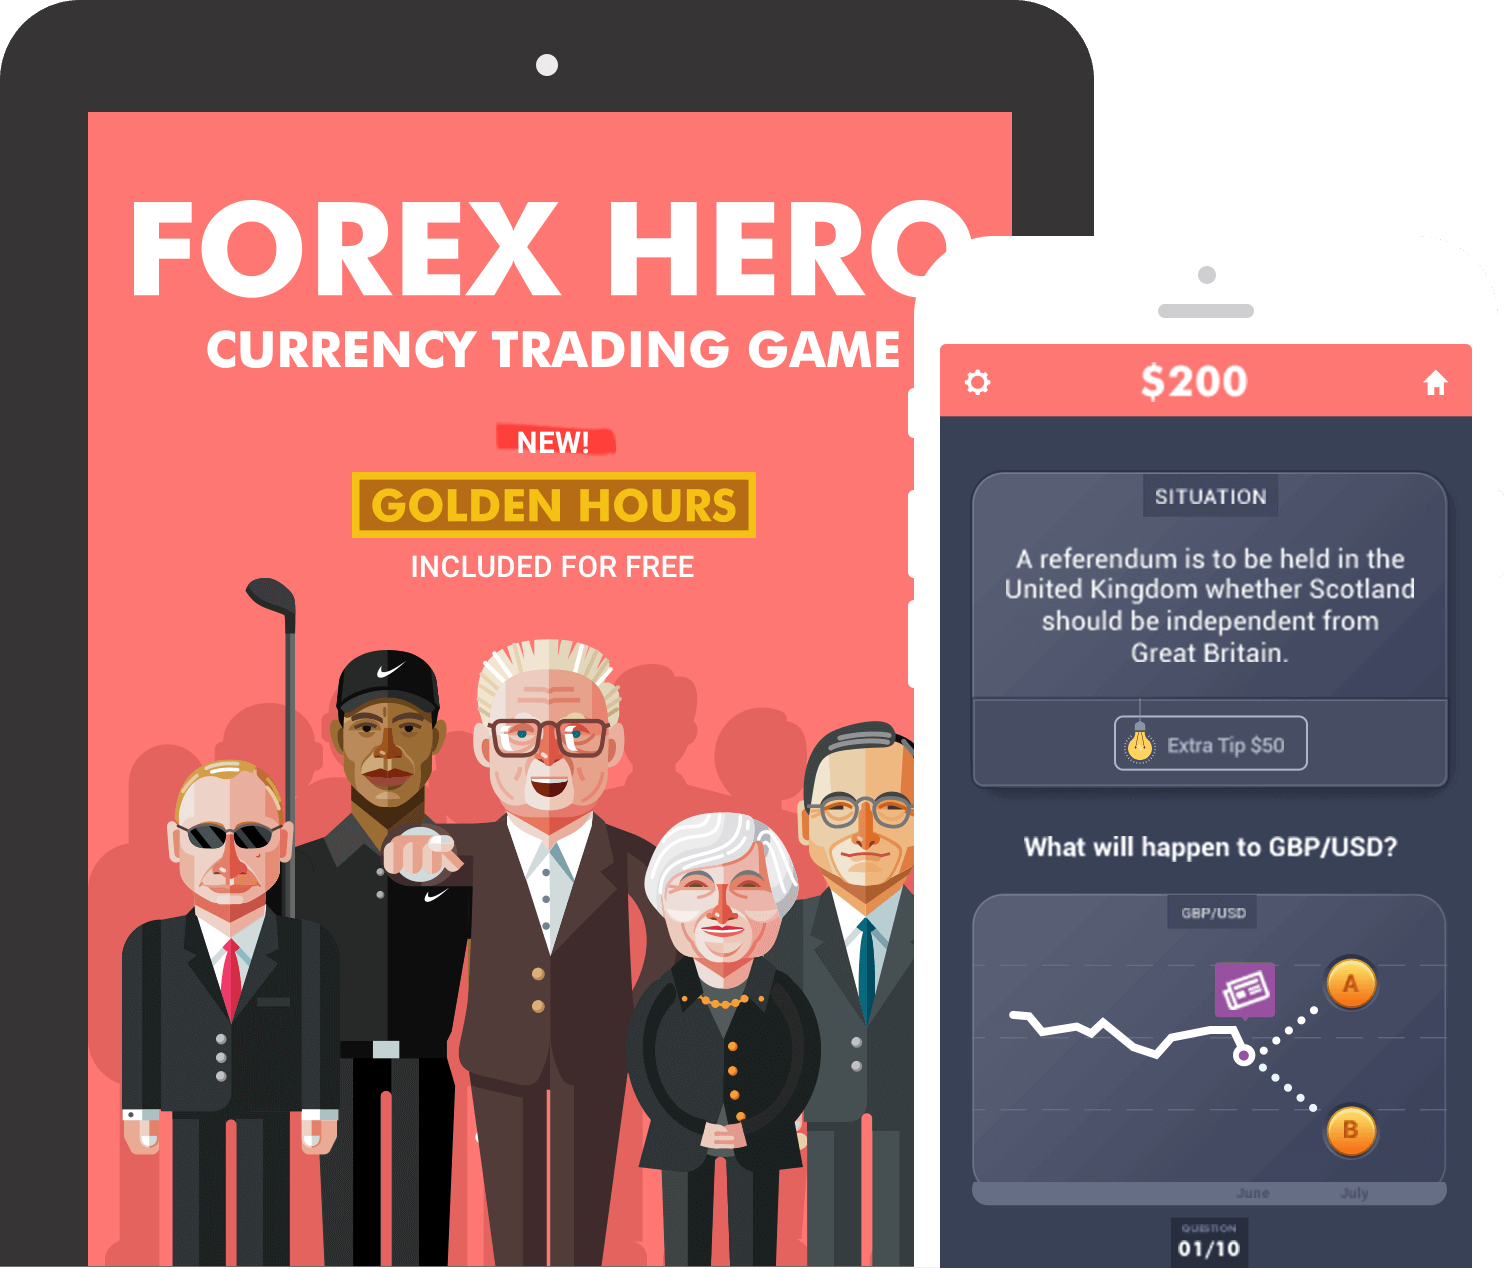 Forex hero trading learning game mobile app screenshots on ipad and mobile phone